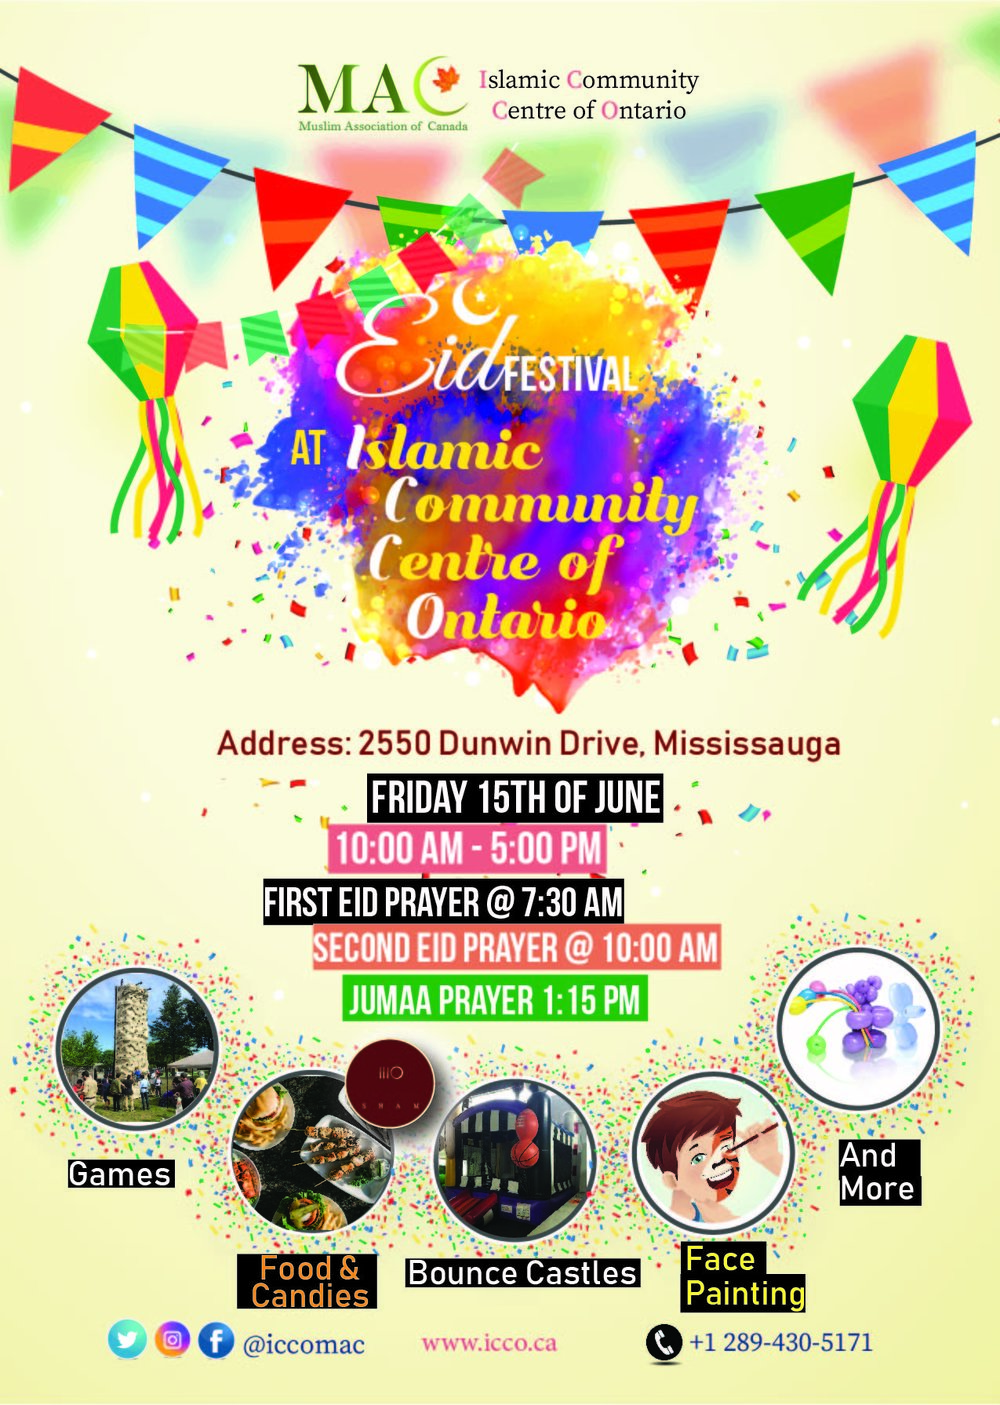 MAC Eid Festival Mississauga at the ICCO - Join us and Your Family for Eid Festival at the Islamic Community Centre of Ontario !!Two Eid prayers, Games, Bounce Castles, Food, Candies, Face Painting, Balloons and more Surprises !!First Eid Prayer @ 7:30 AMTakberat @7:00 AMSecond Eid Prayer @ 10:00 AMTakberat @9:30 AMJumaa Prayer @ 1:15 PMFestival from 10:00 AM to 5:00 PMPlease help us Spread the Joy in Eid day as its a Sunnah = )Volunteer with us NOW !! email us at assistant@icco.macnet.cahttps://maceidfest.com/mississauga/